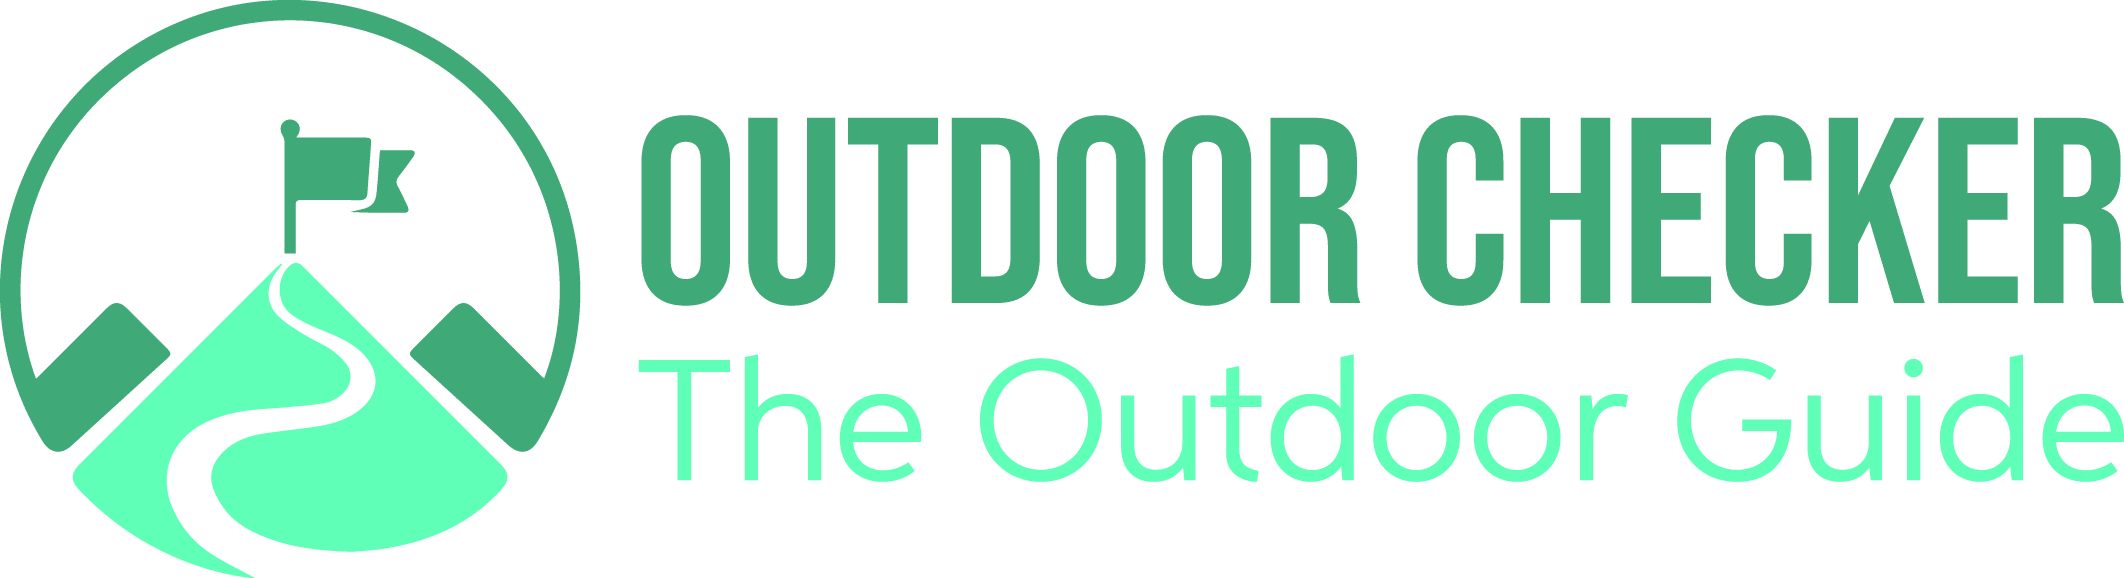 Outdoor Guide